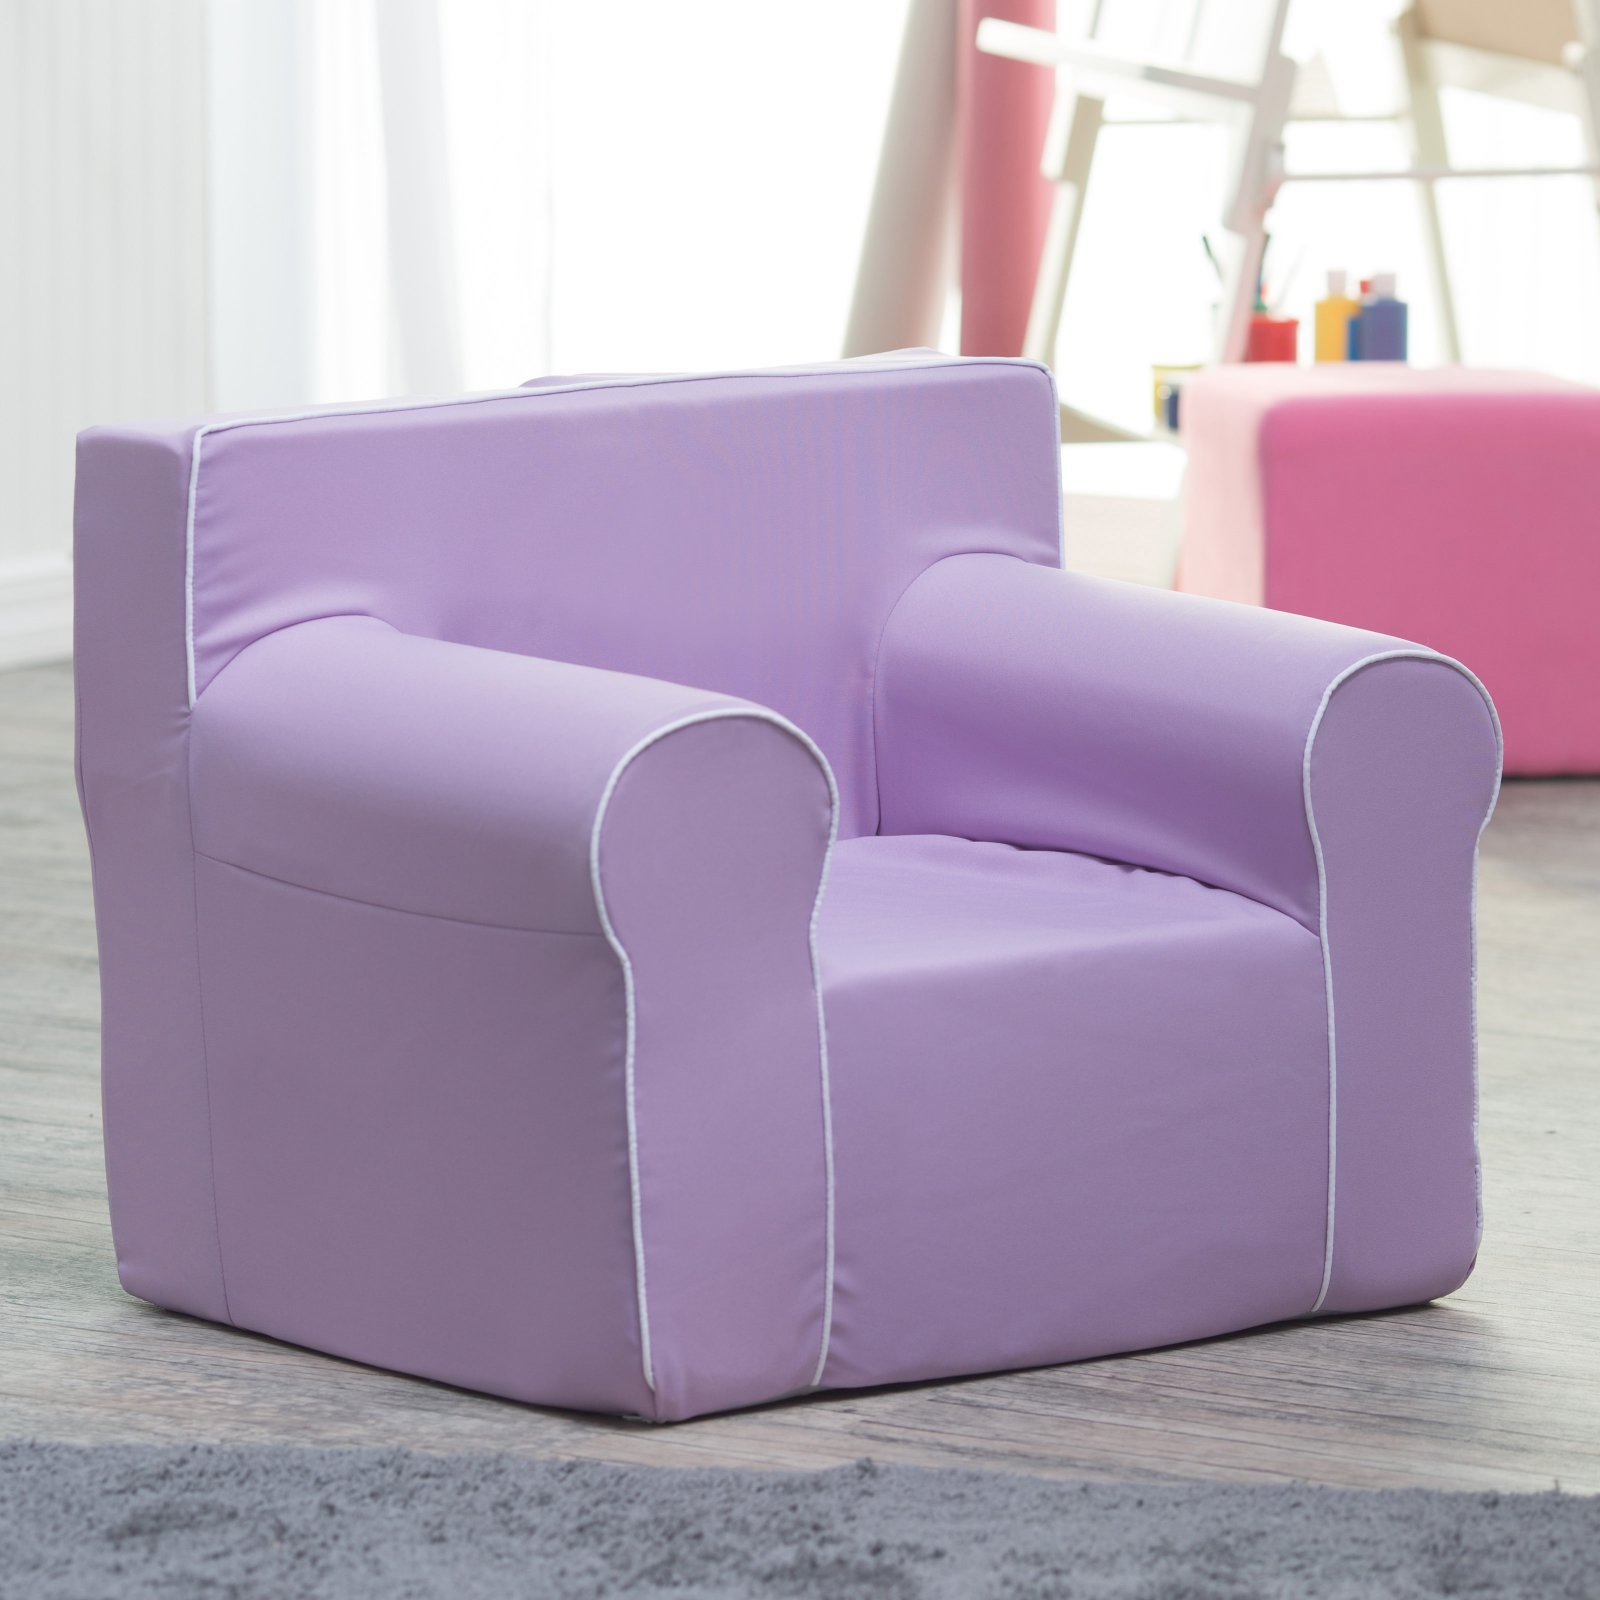 Fun Furnishings Here and There Kids Chair - Lavender Canv...